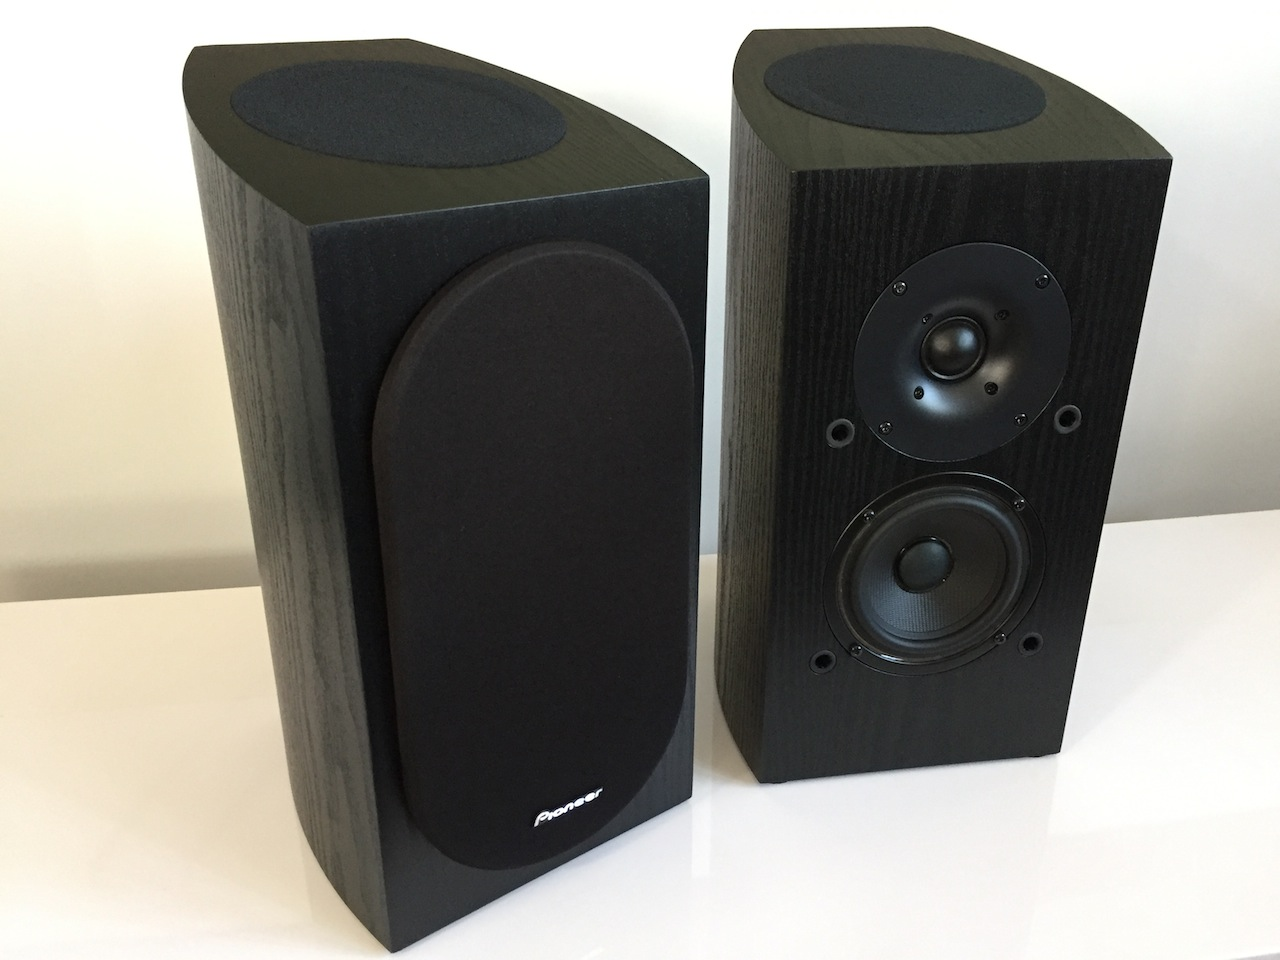 PIONEER SP BS22A LR Dolby Atmos Bookshelf Speakers Andrew Jones Electronics Audio On Carousell